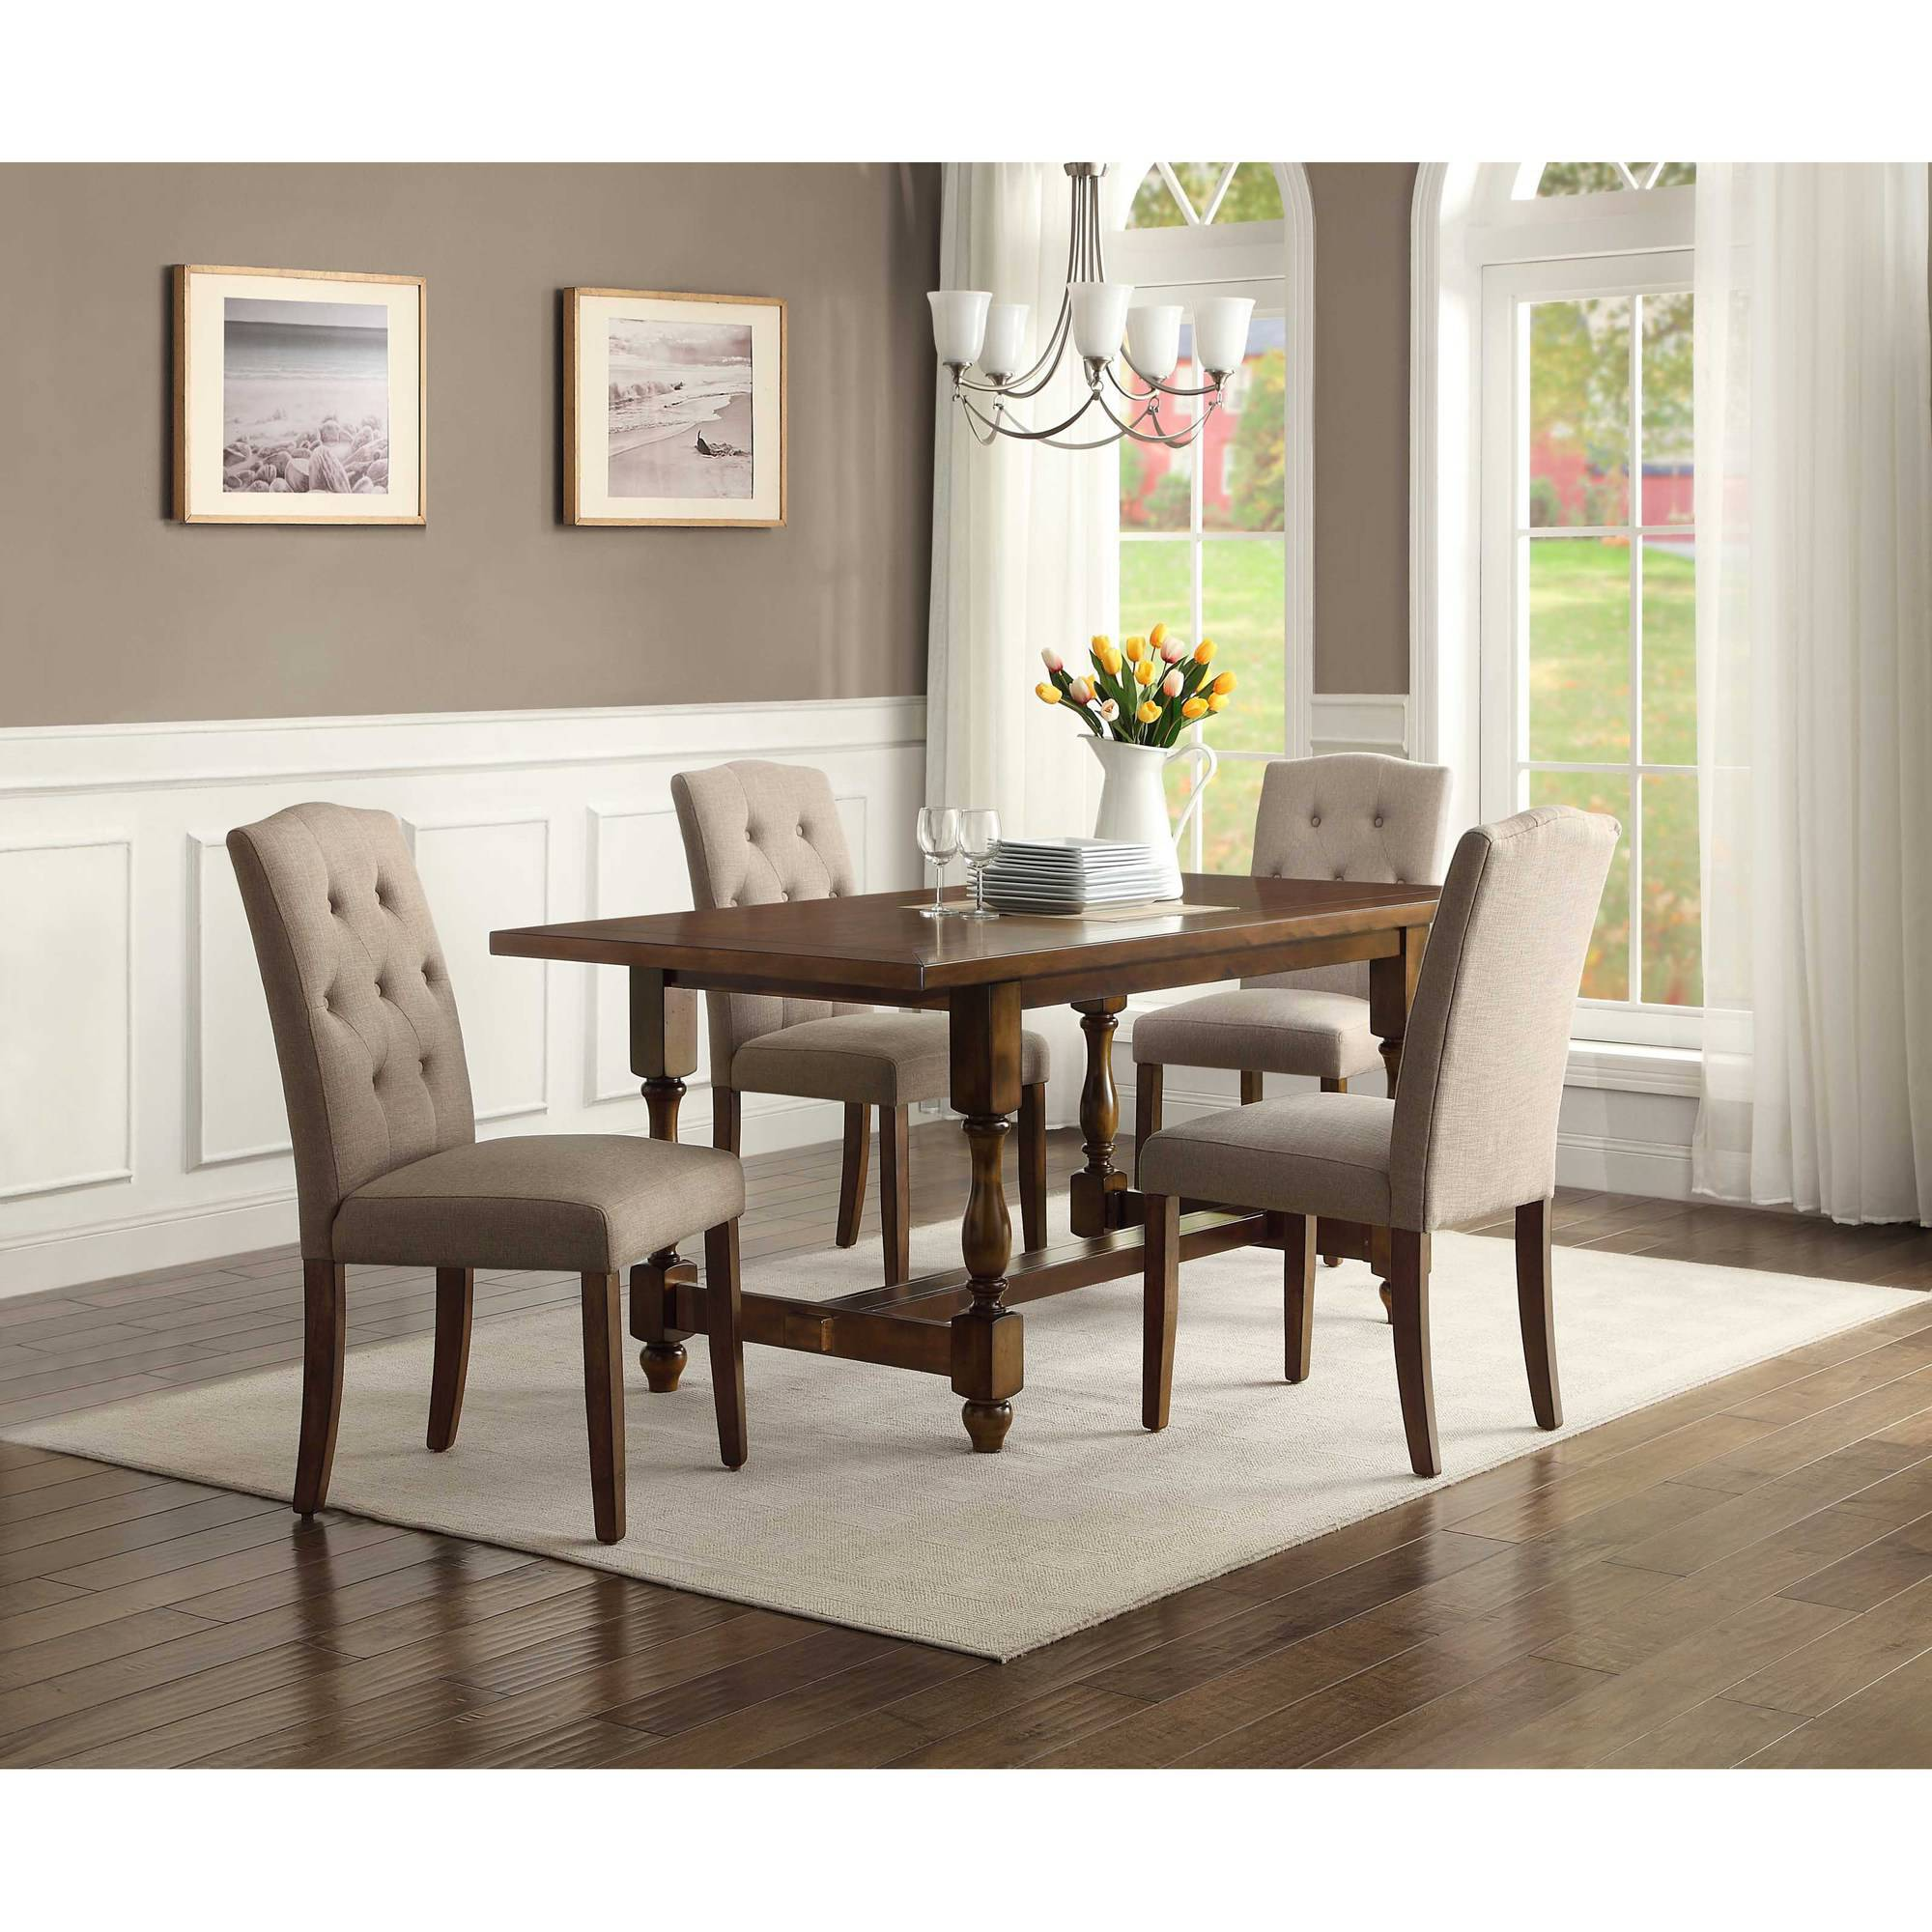 Better Homes And Gardens Providence 5 Piece Dining Set, Brown   Walmart.com